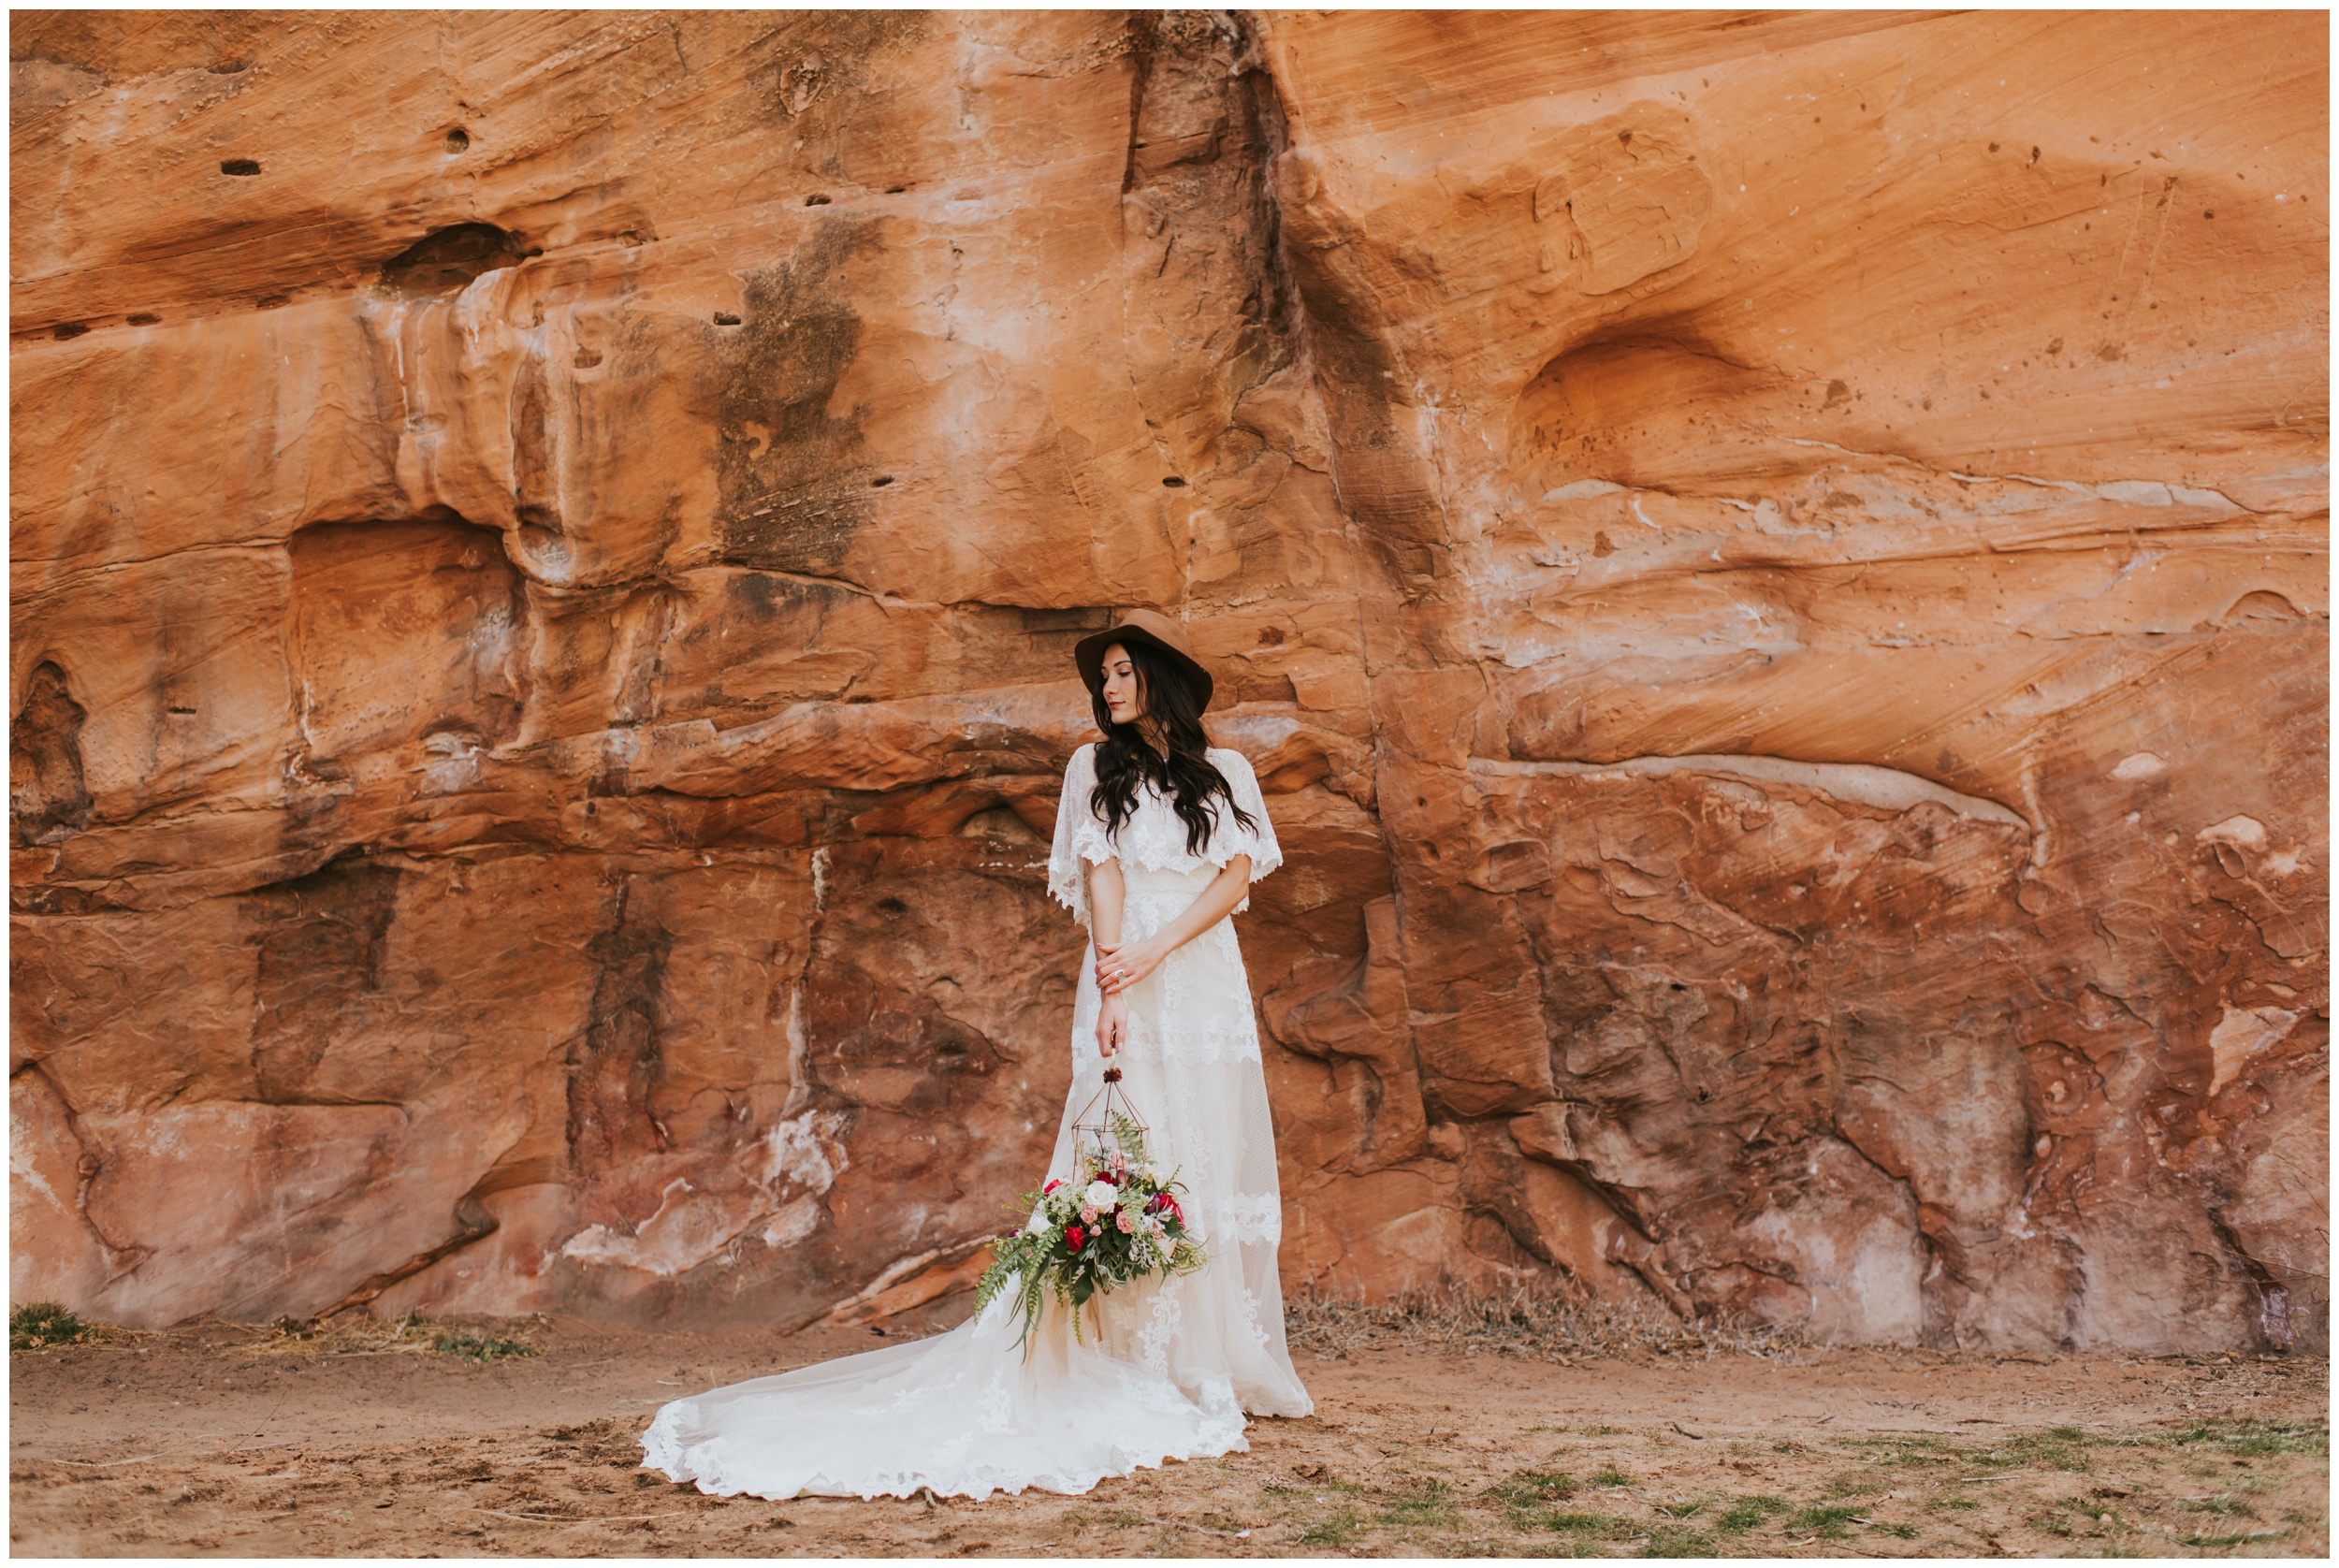 redrockutah-idahophotographer-utahphotographer-wedding-34.jpg